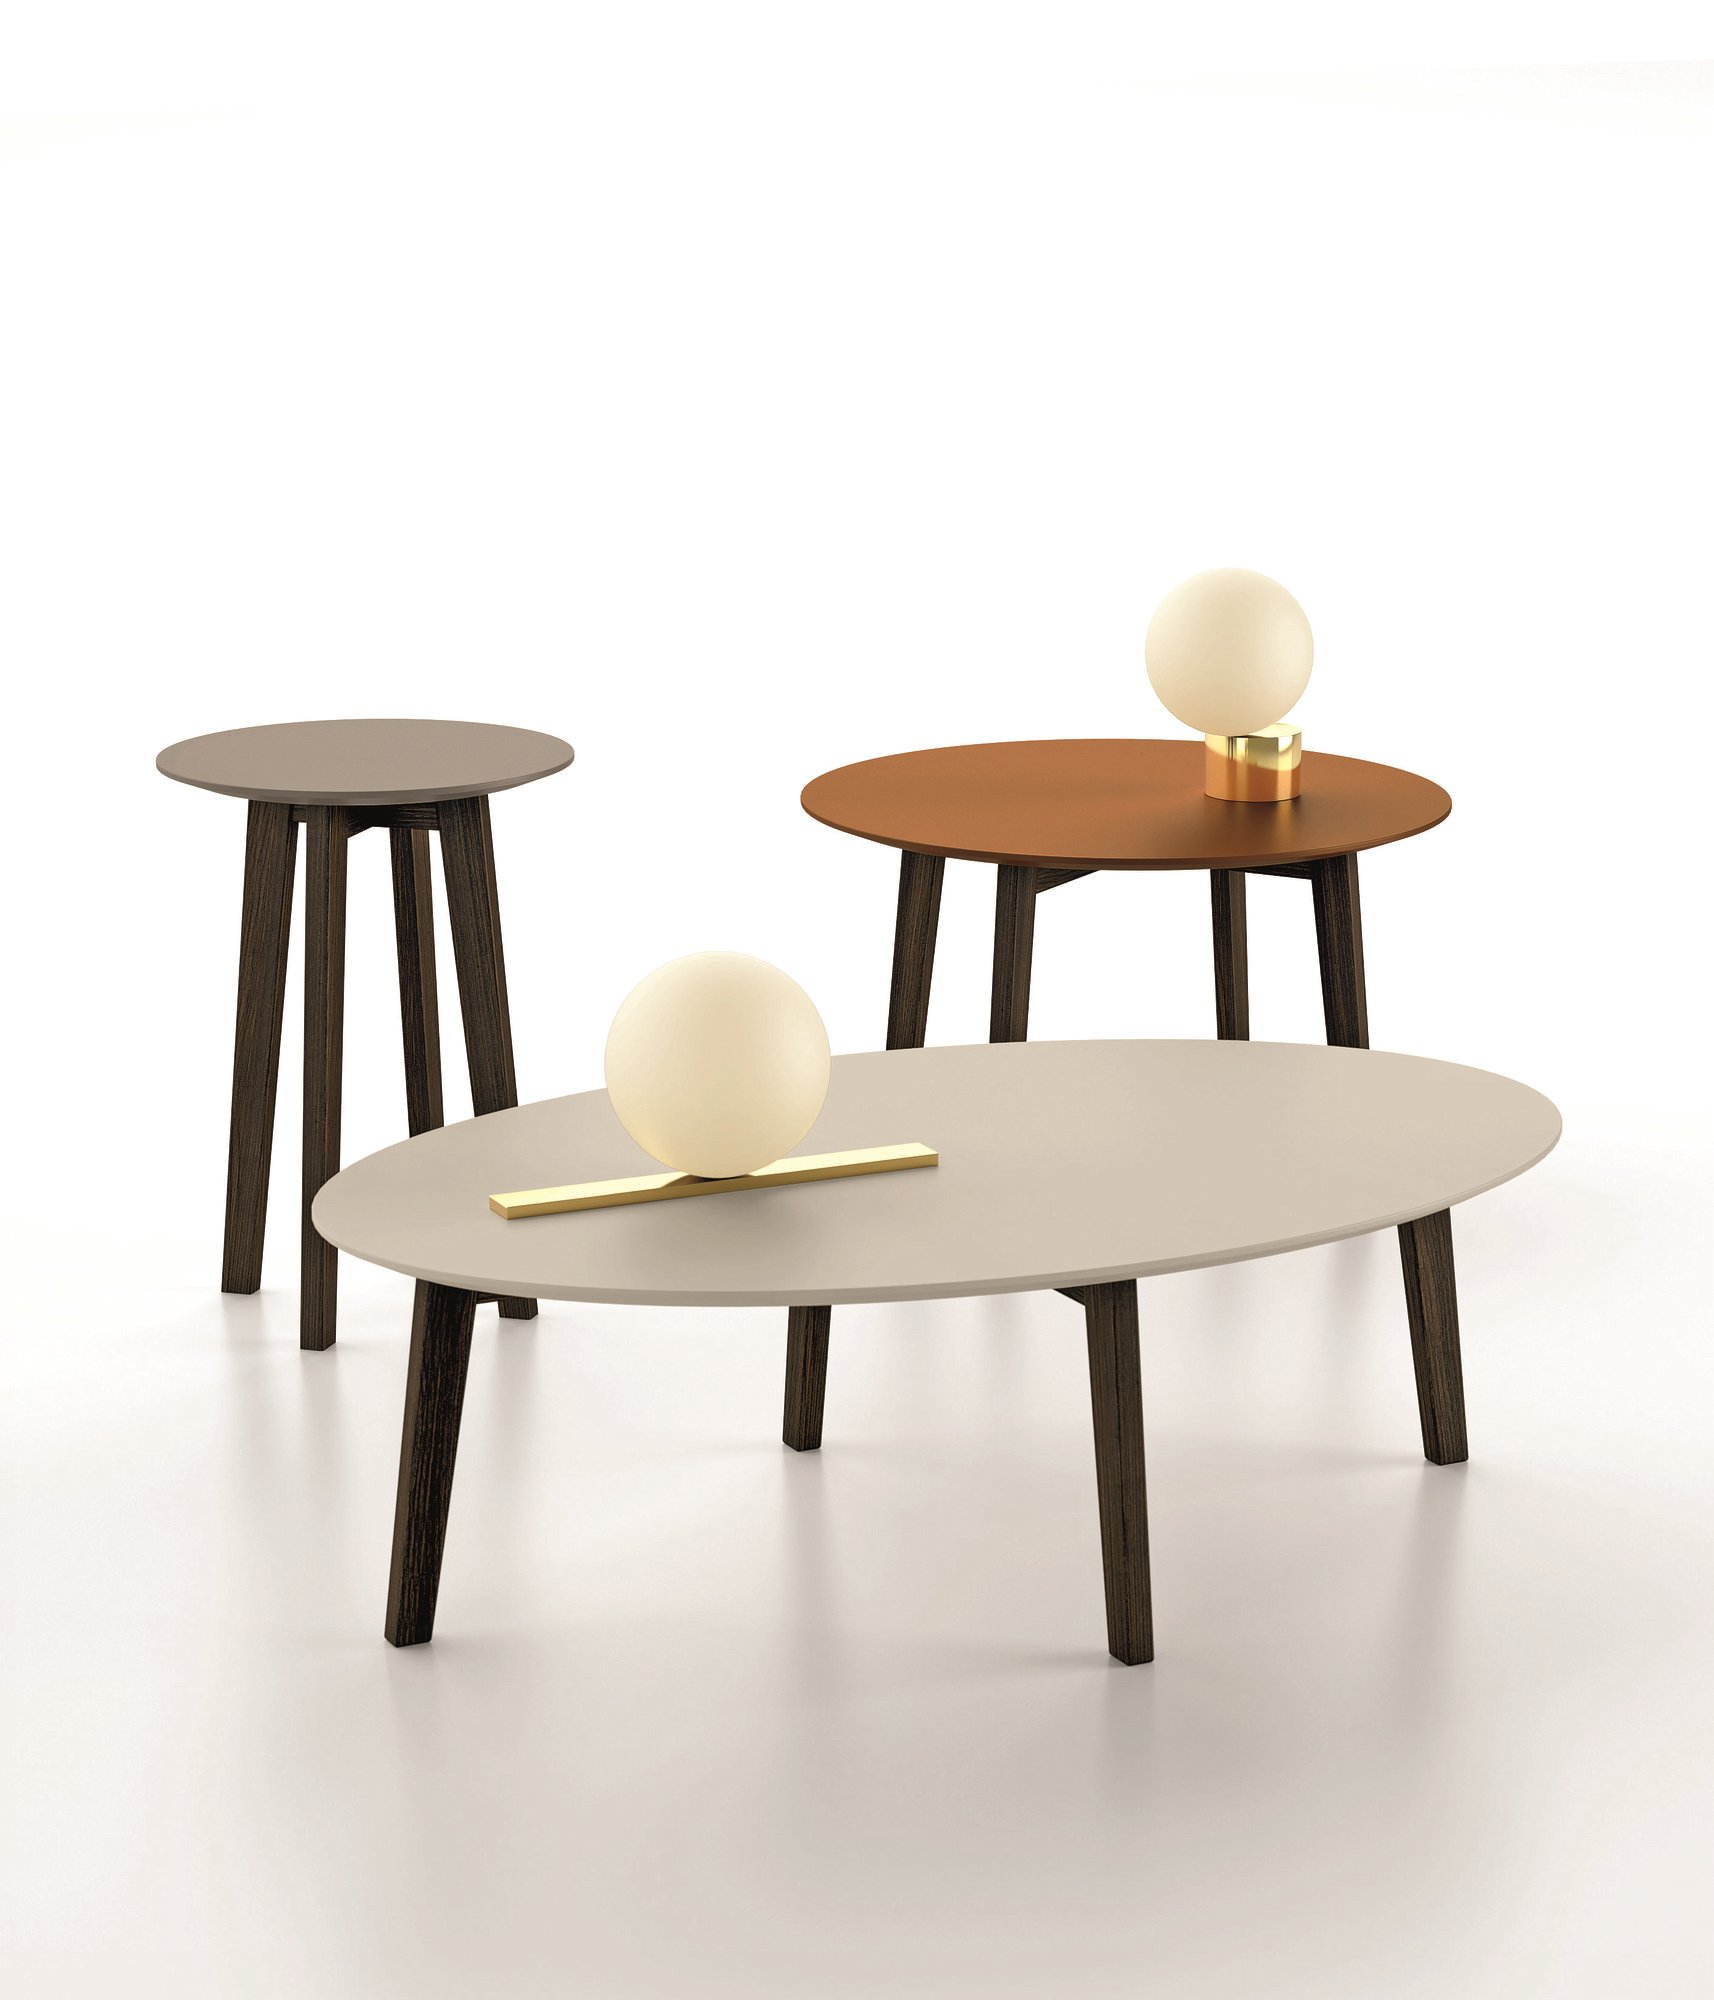 Table Basse Ronde Ovale Zoe Table Basse Ovale By Dallagnese Design Imago Design